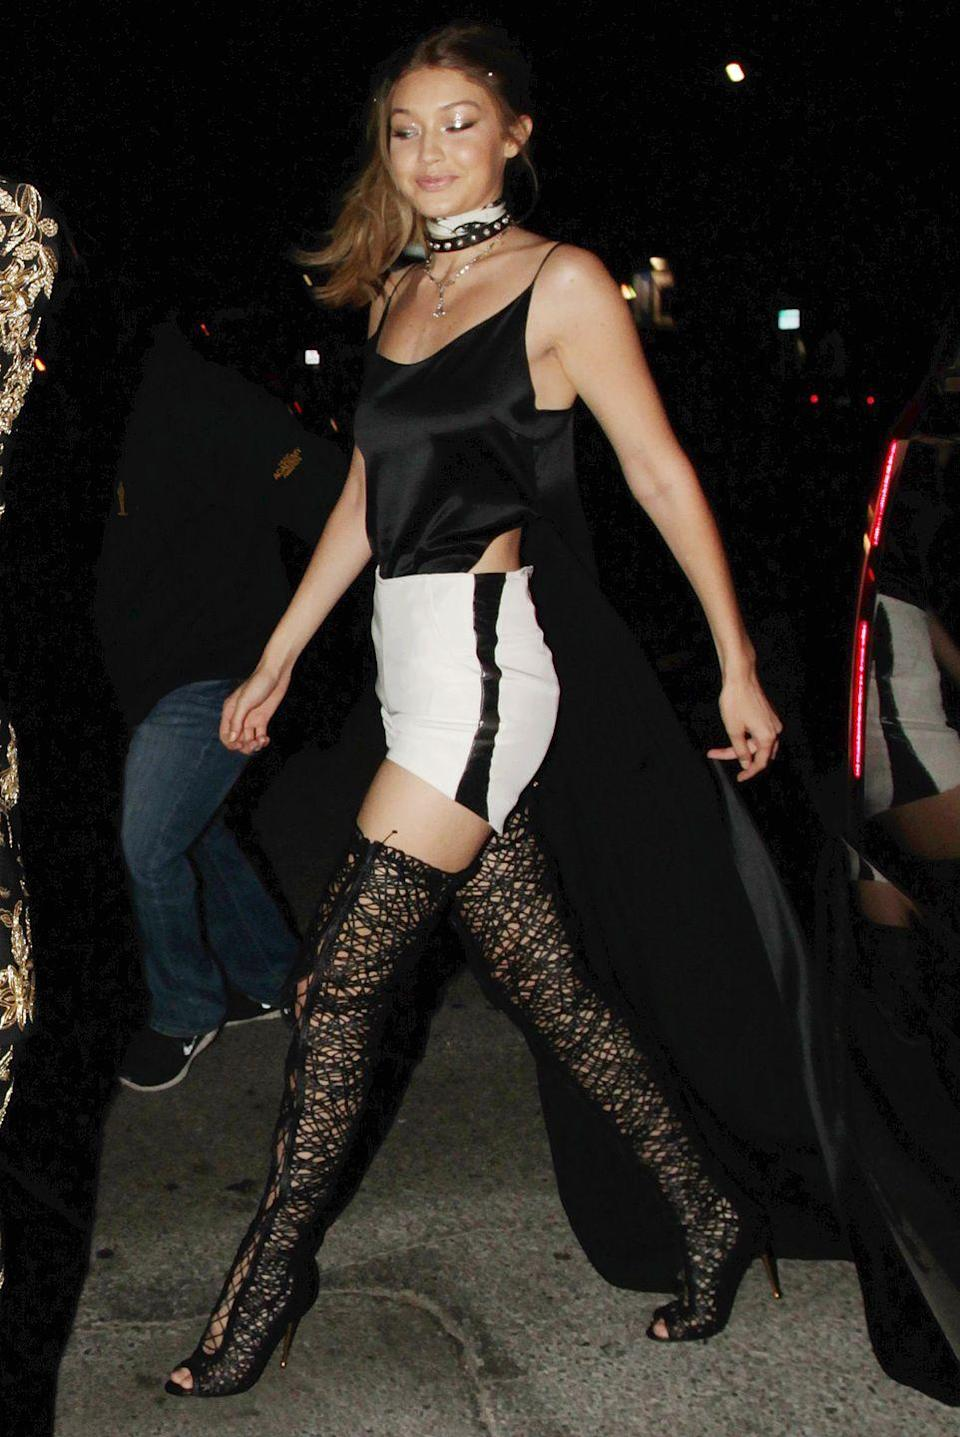 <p>The newly 21-year-old steps out in dangerously sexy boots for yet another birthday party at The Nice Guy in Los Angeles.</p>